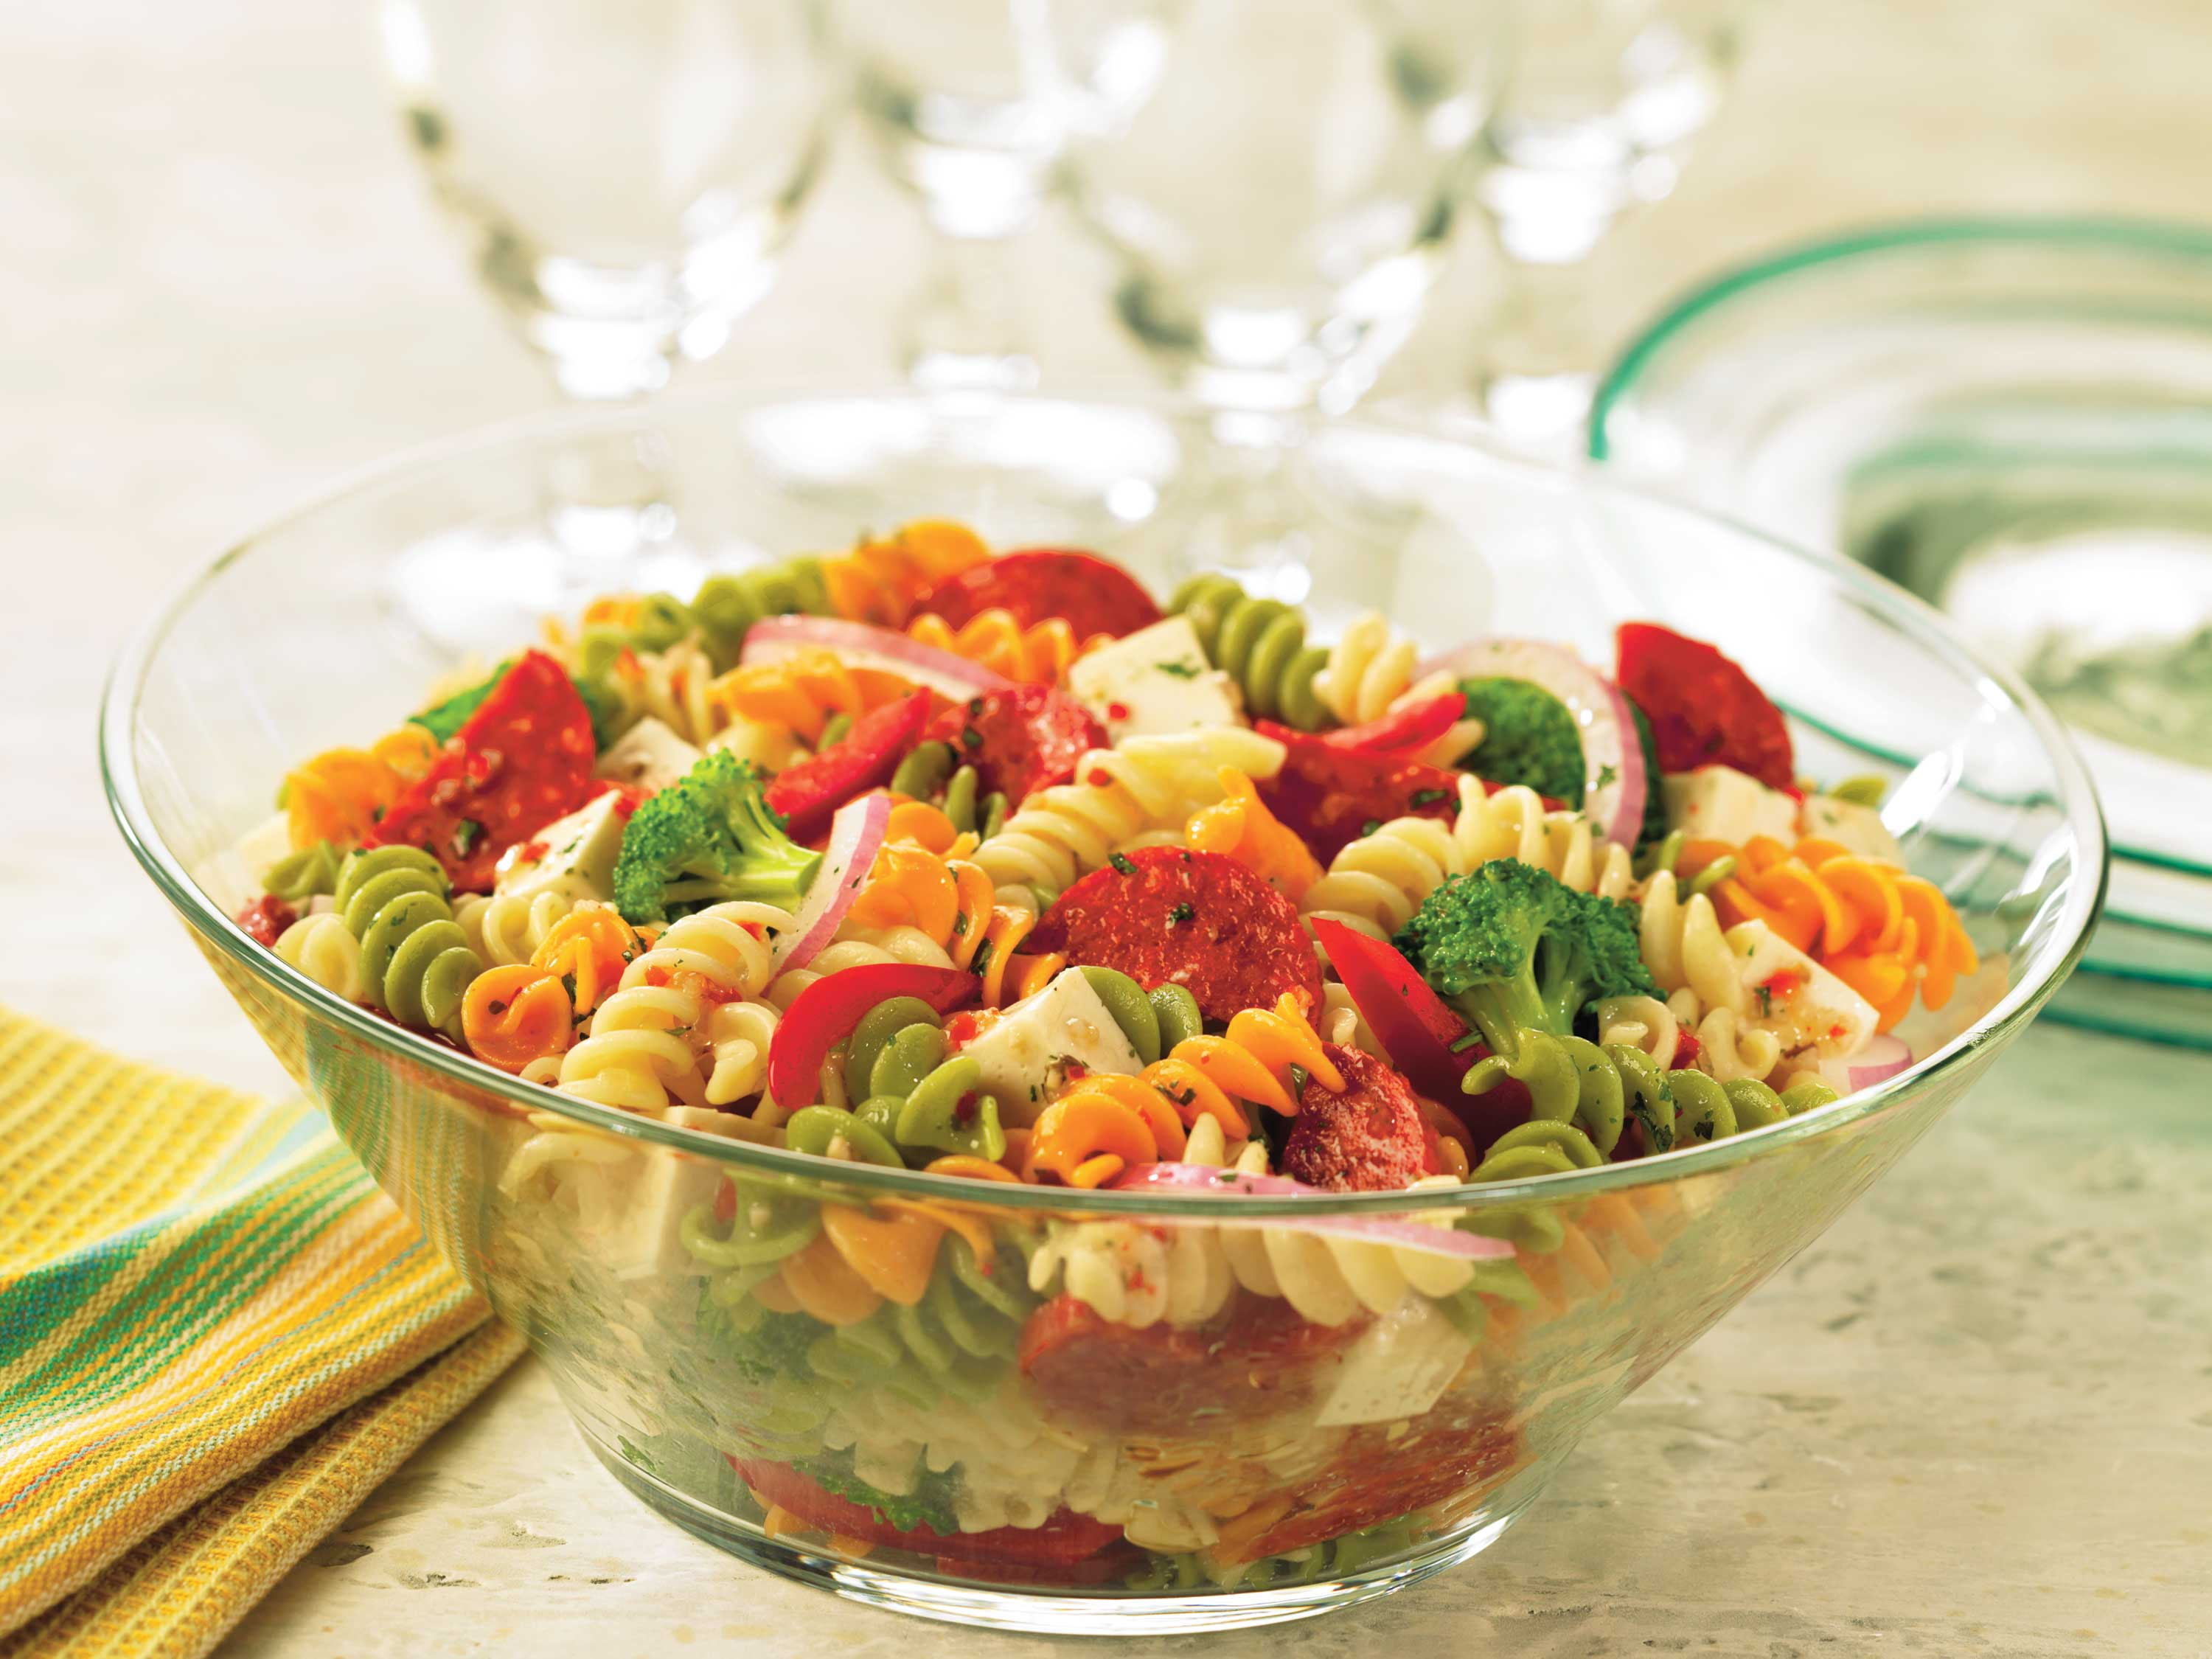 Pepperoni, mozzarella, and vegetables combine for an Italian-inspired pasta salad that's easy and quick to pull together.